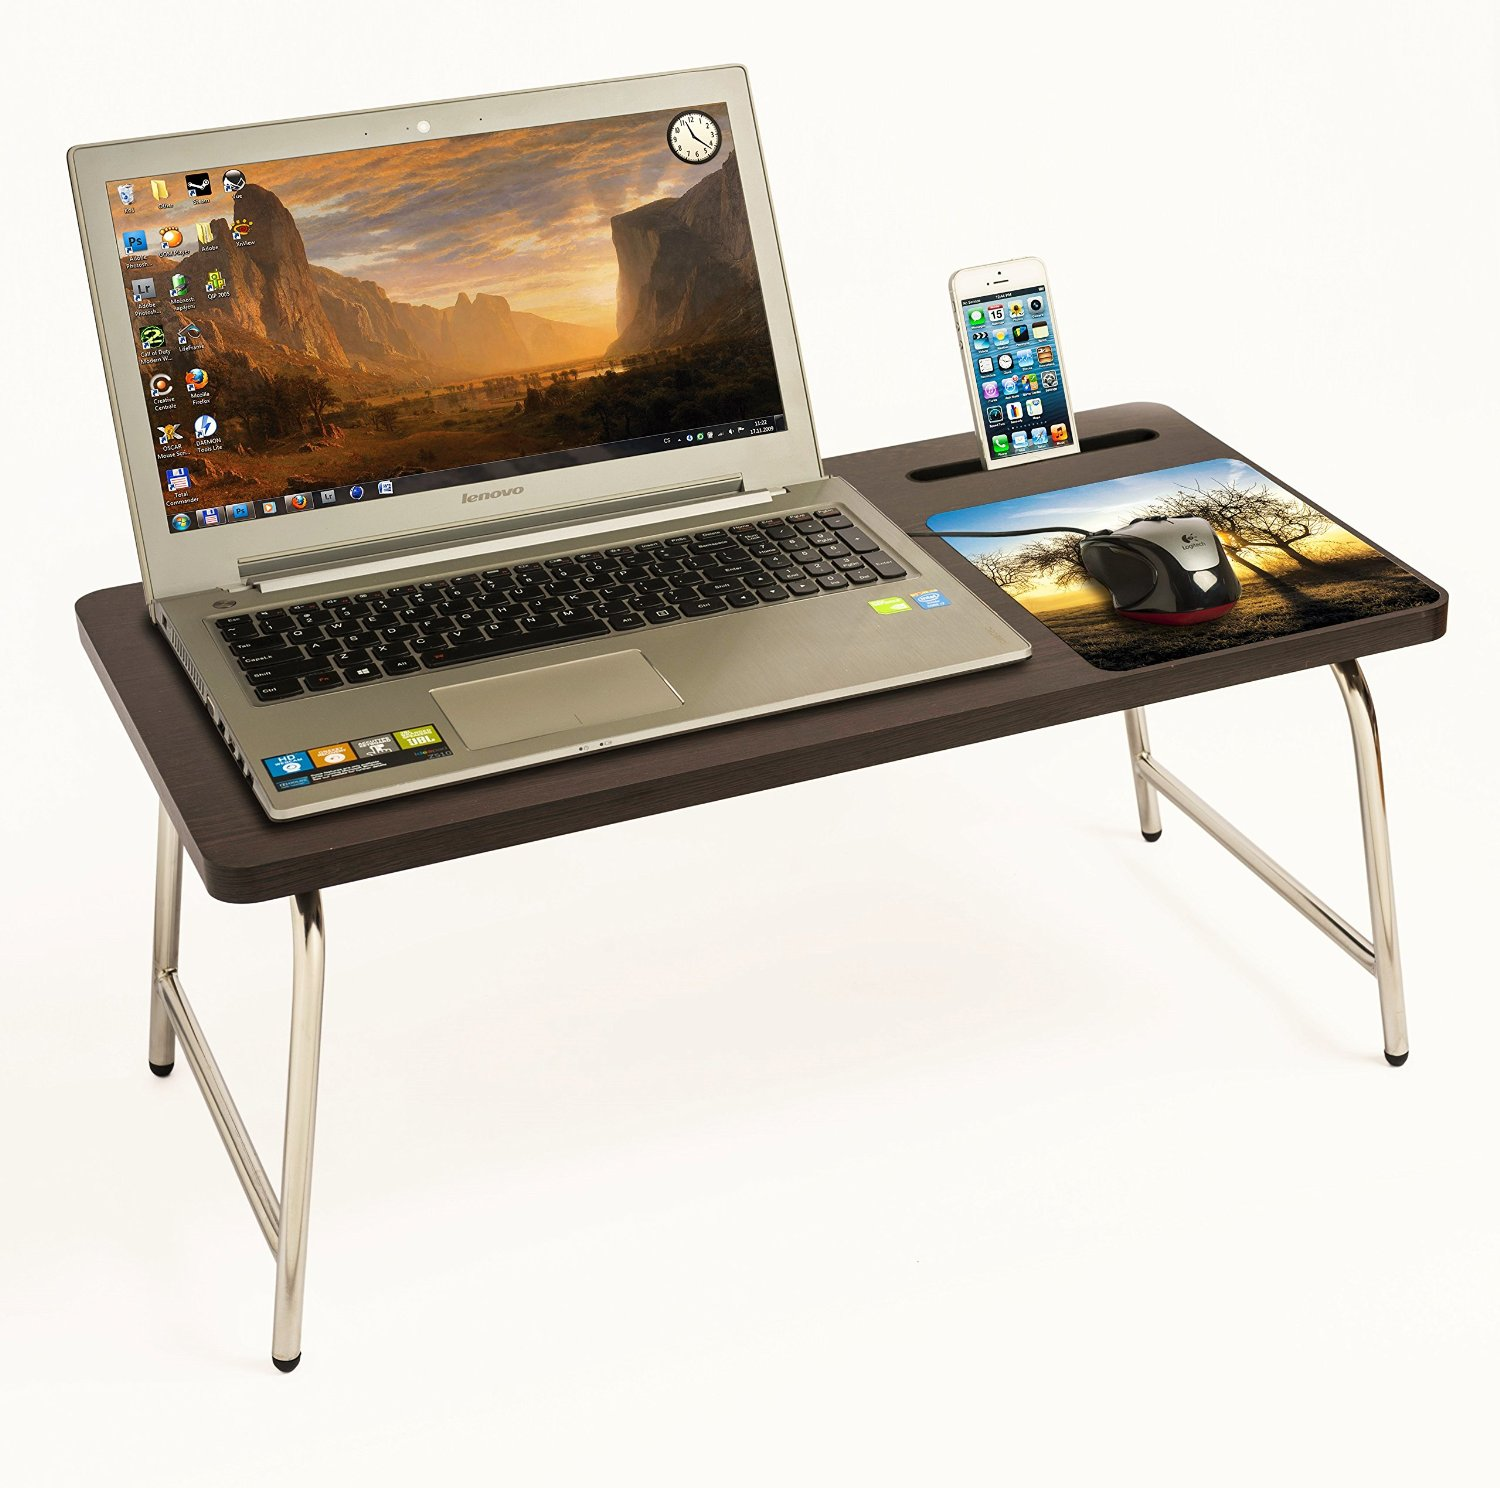 Laptop Holder For Bed Riona Bluewud Bed Laptop Table With Inbuilt Mobile Stand